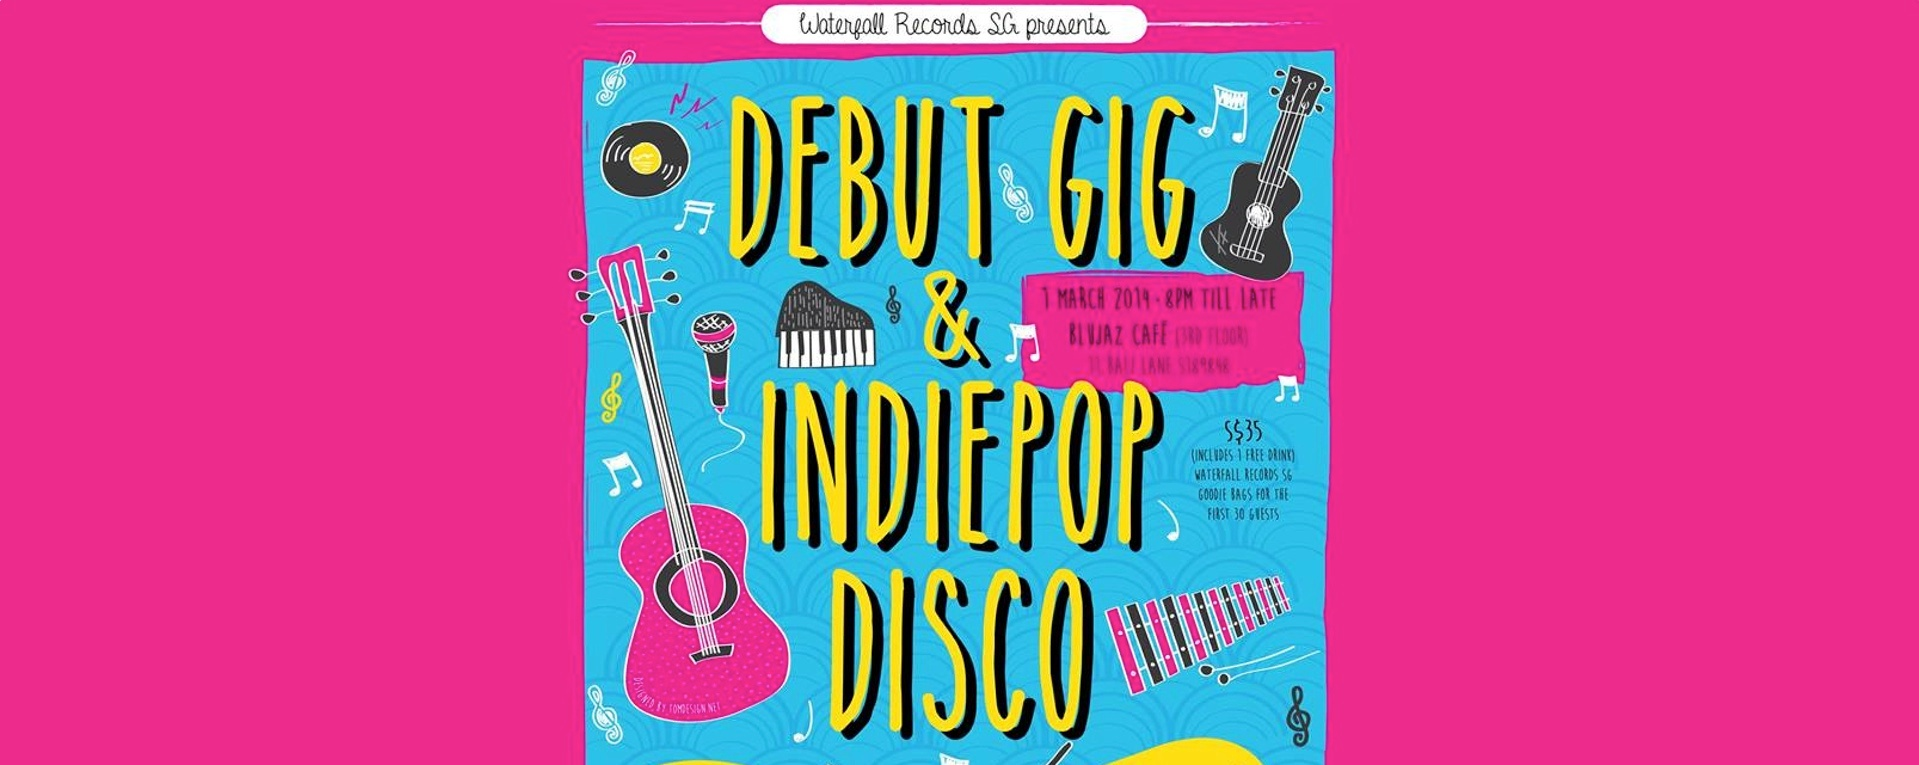 Waterfall Records SG: Debut Gig & Indie Pop Disco